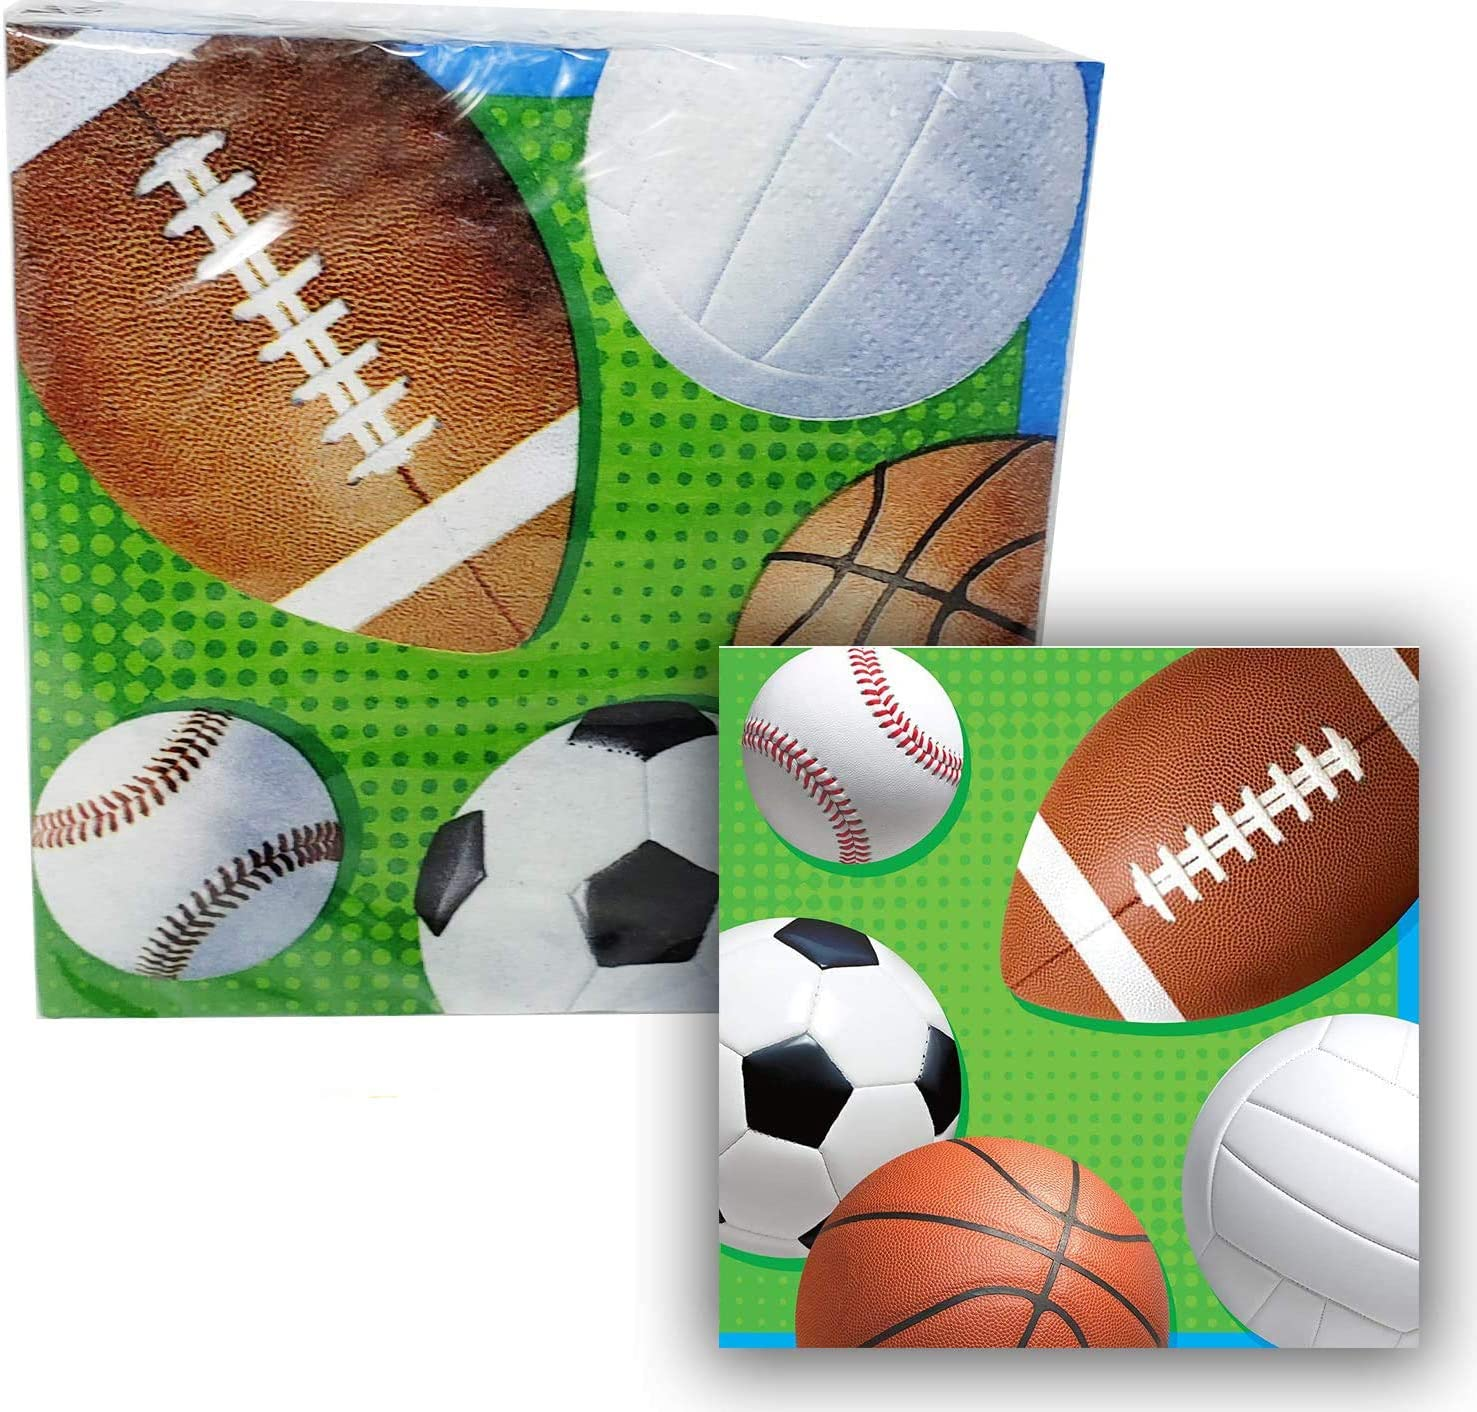 Party Sports Themed Beverage Napkins (192 count) Football, Baseball, Soccer, Volleyballs - 2-ply 16 x 12 packs